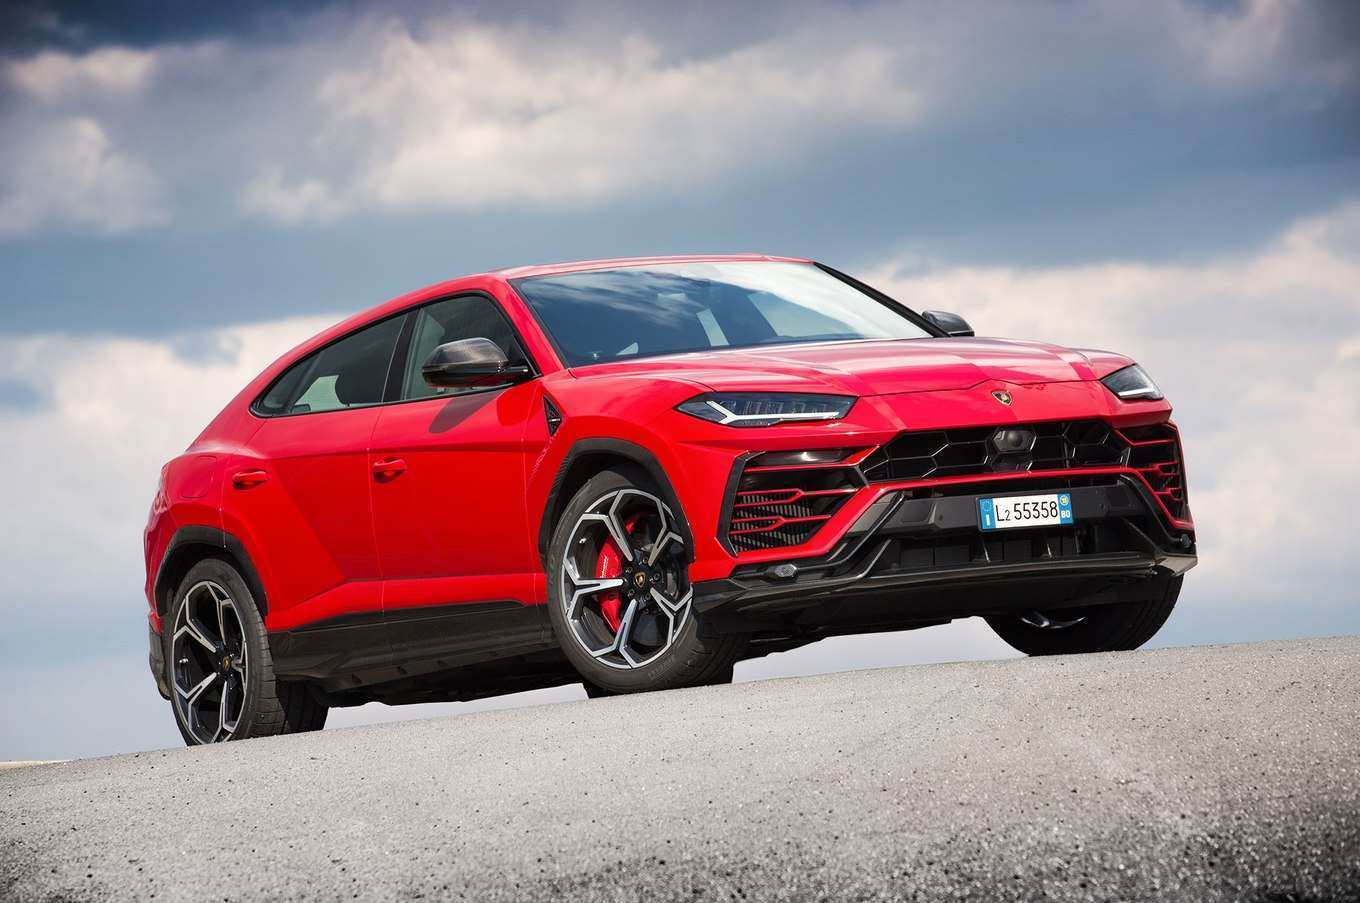 43 A 2019 Lamborghini Urus Exterior And Interior